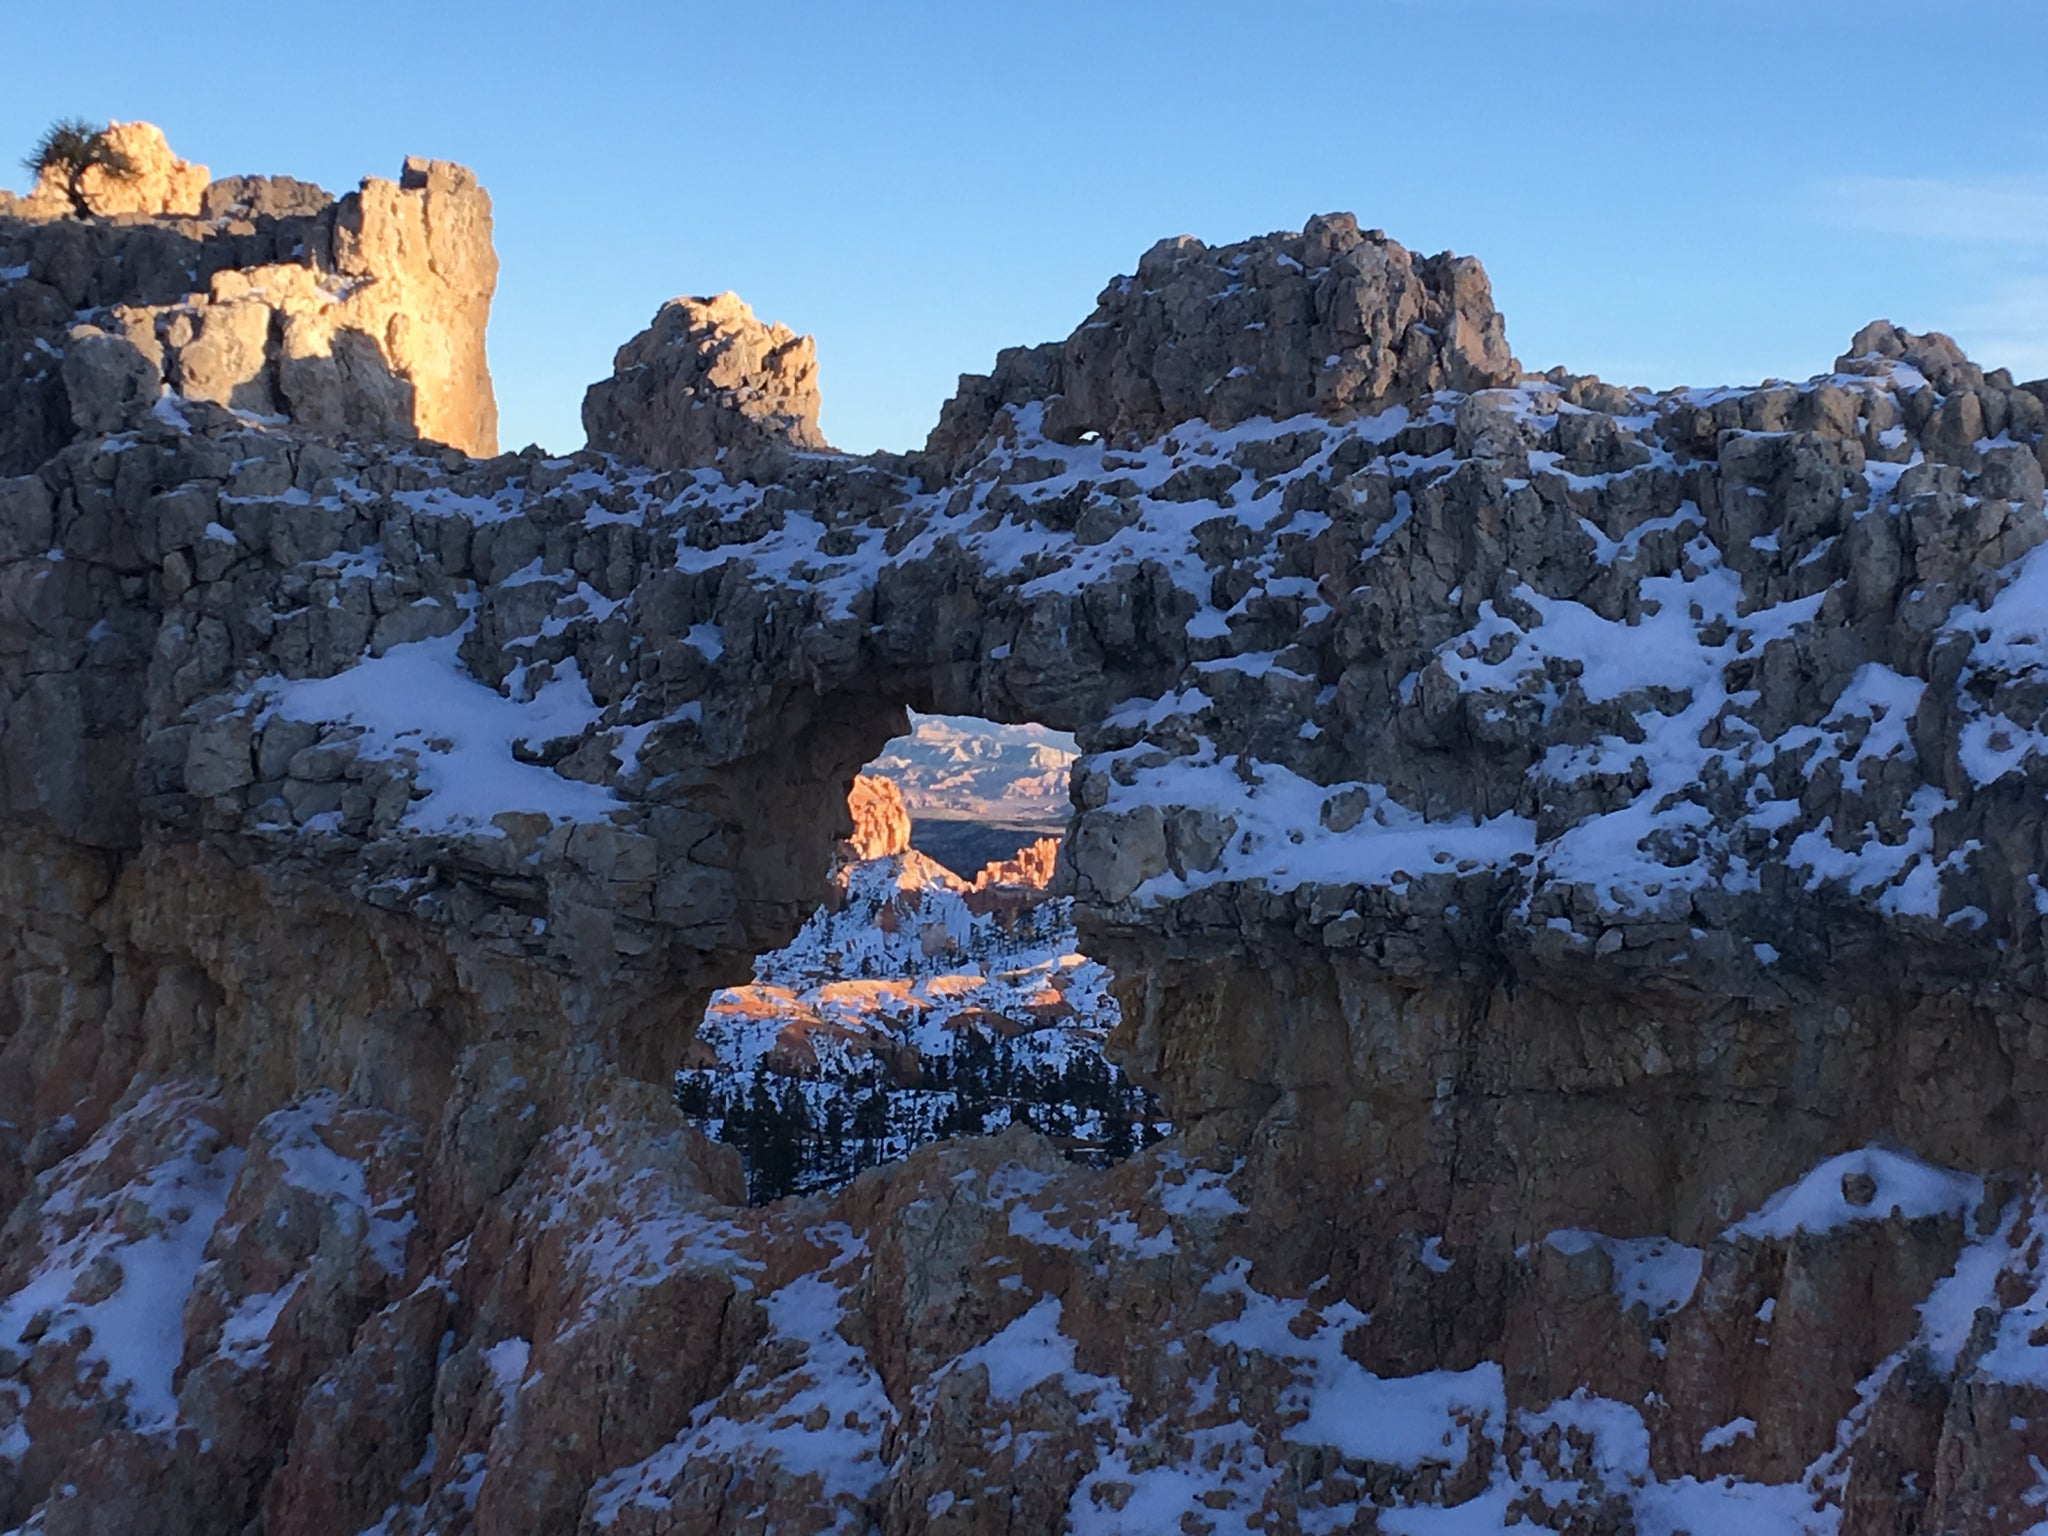 The Complete Guide to Hiking and Tent Camping Bryce Canyon in the Winter